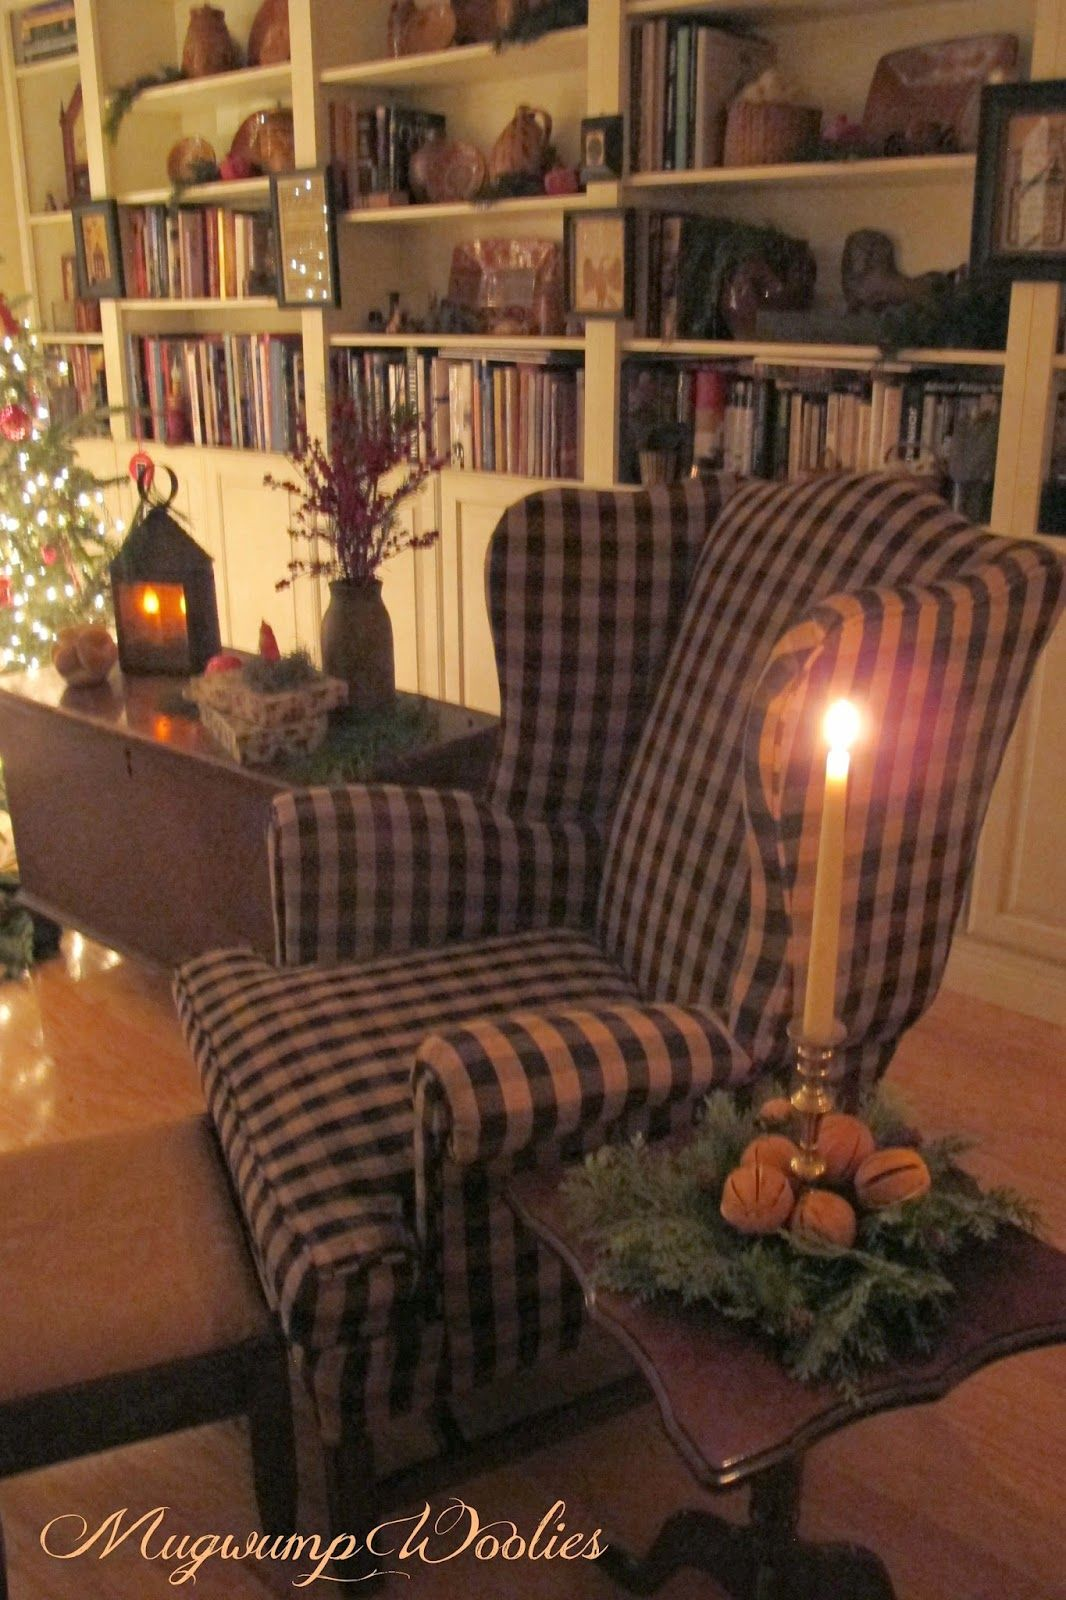 Primitive Country Living Room Decorating Ideas: Mugwump Woolies: Bits Of Christmas And Candlelight. I Love